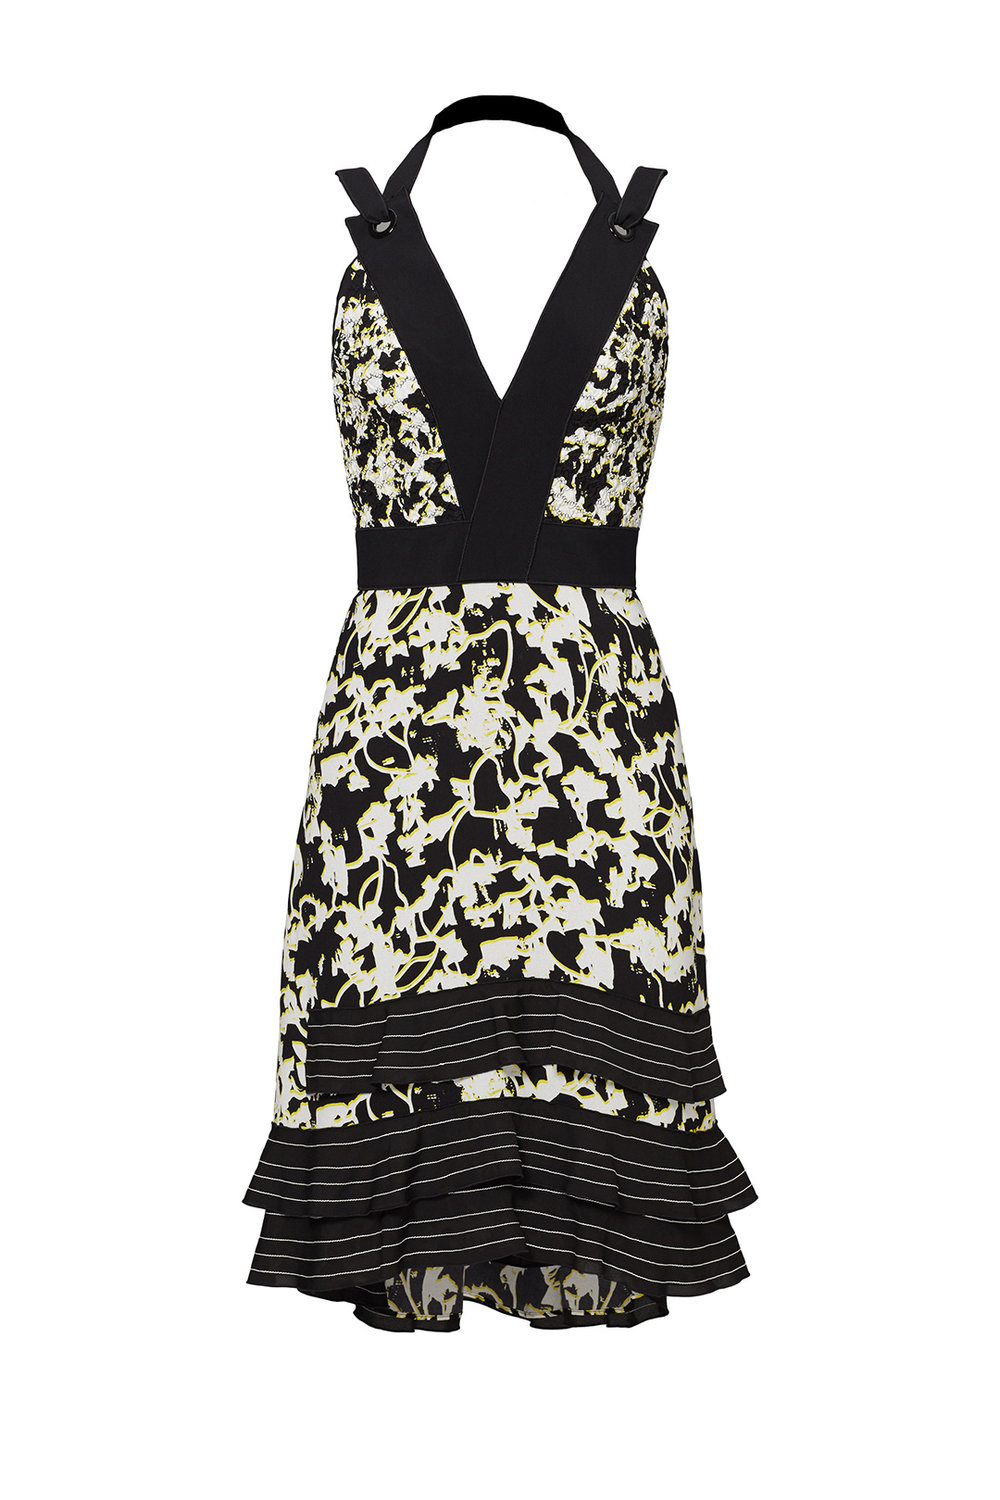 Yellow Vine Dress  Proenza Schouler Pansy Long Sleeve Dress from Rent the Runway | Top US fashion blog, The Borrowed Babes features the Best Spring Floral Dresses